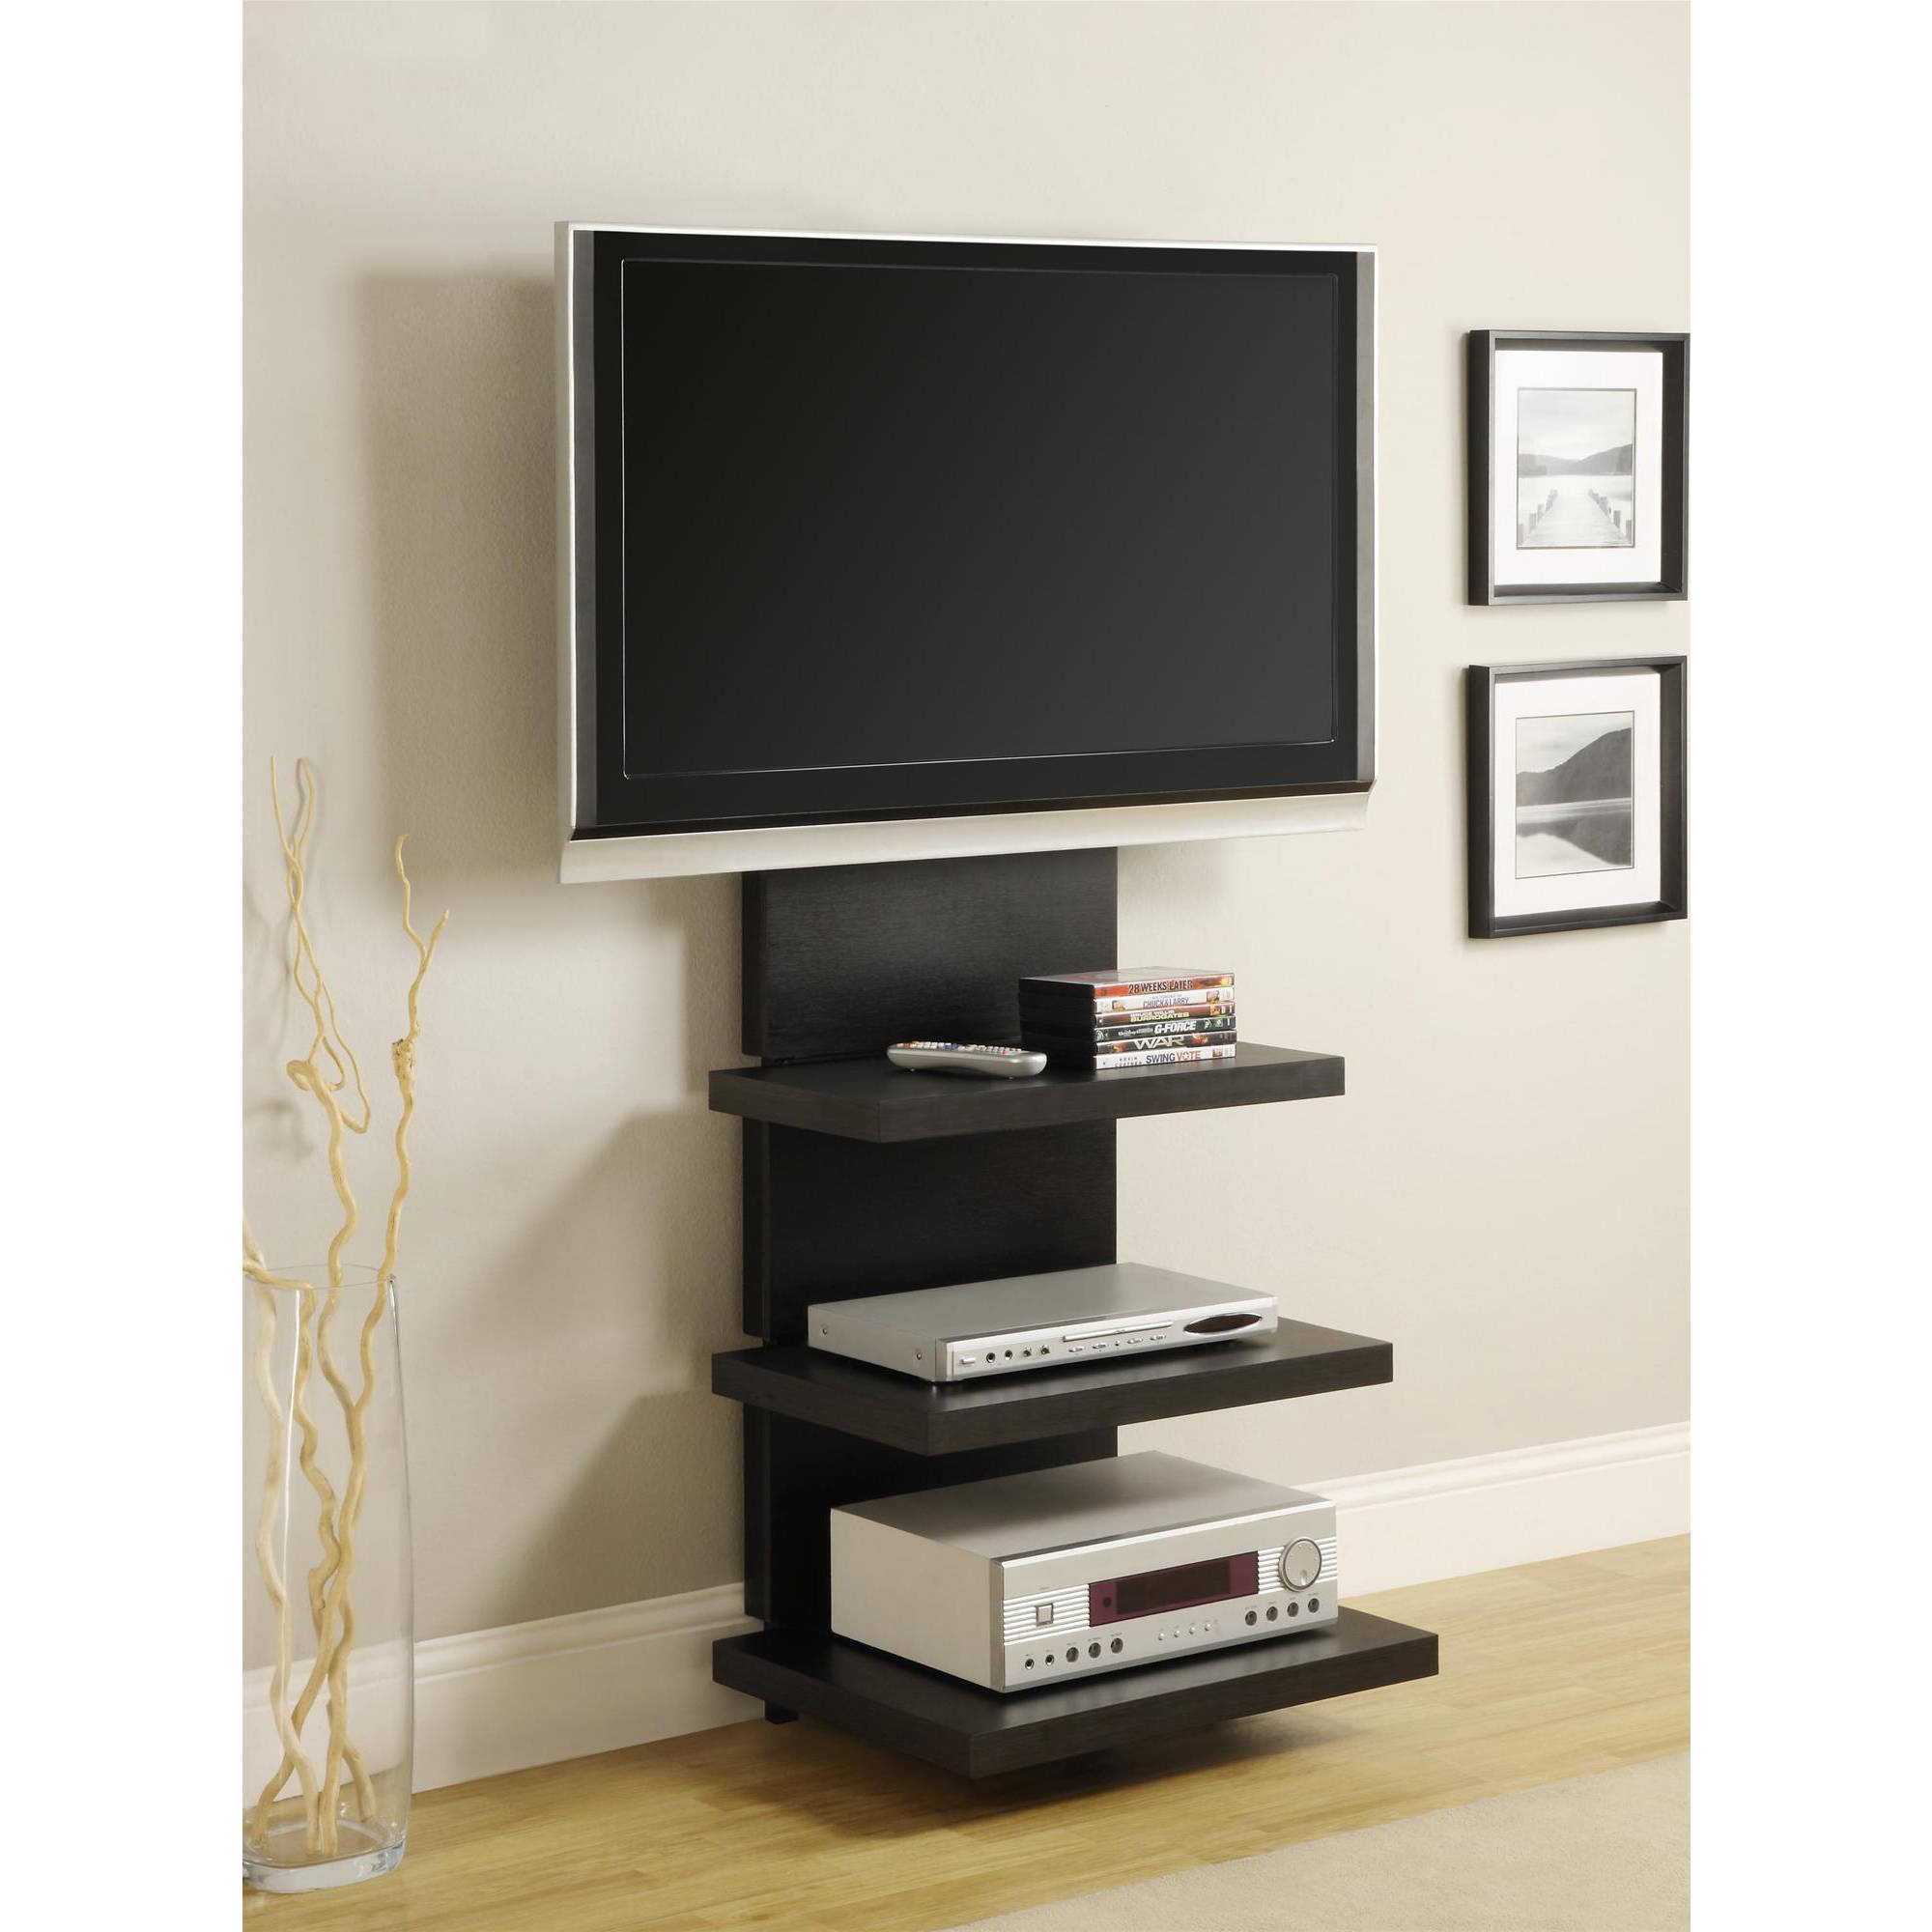 "Ameriwood Home Elevation AltraMount TV Stand for TVs up to 60"" wide"